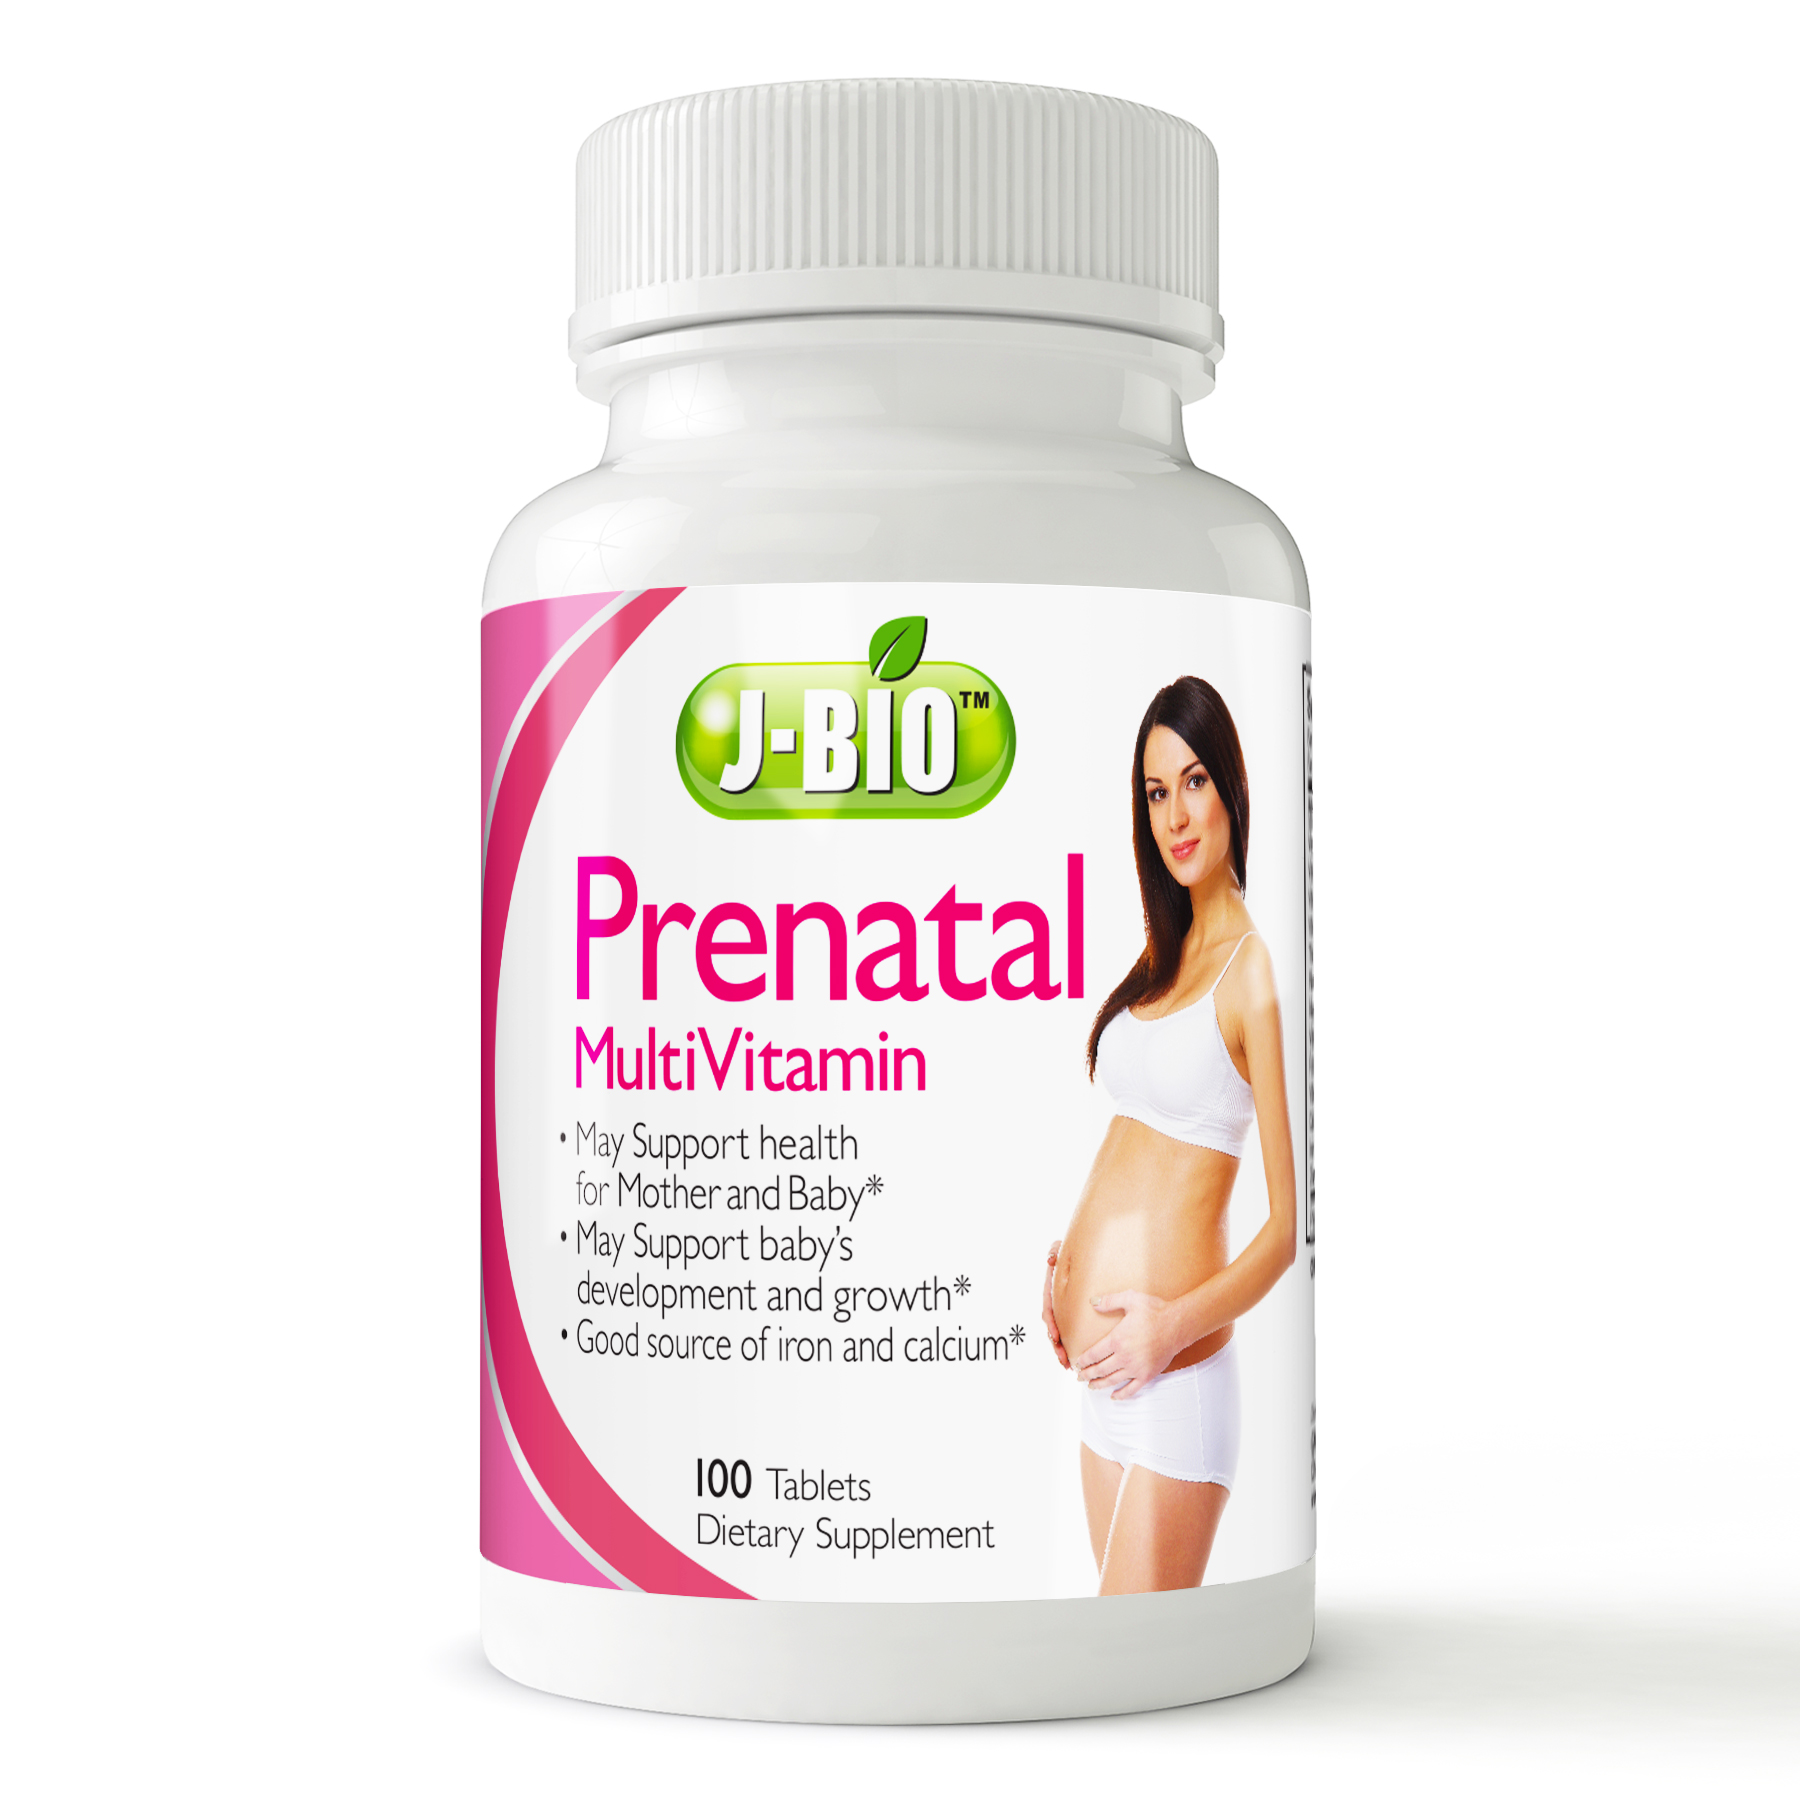 J-Bio™ Prenatal MultiVitamin (100 Tablets)